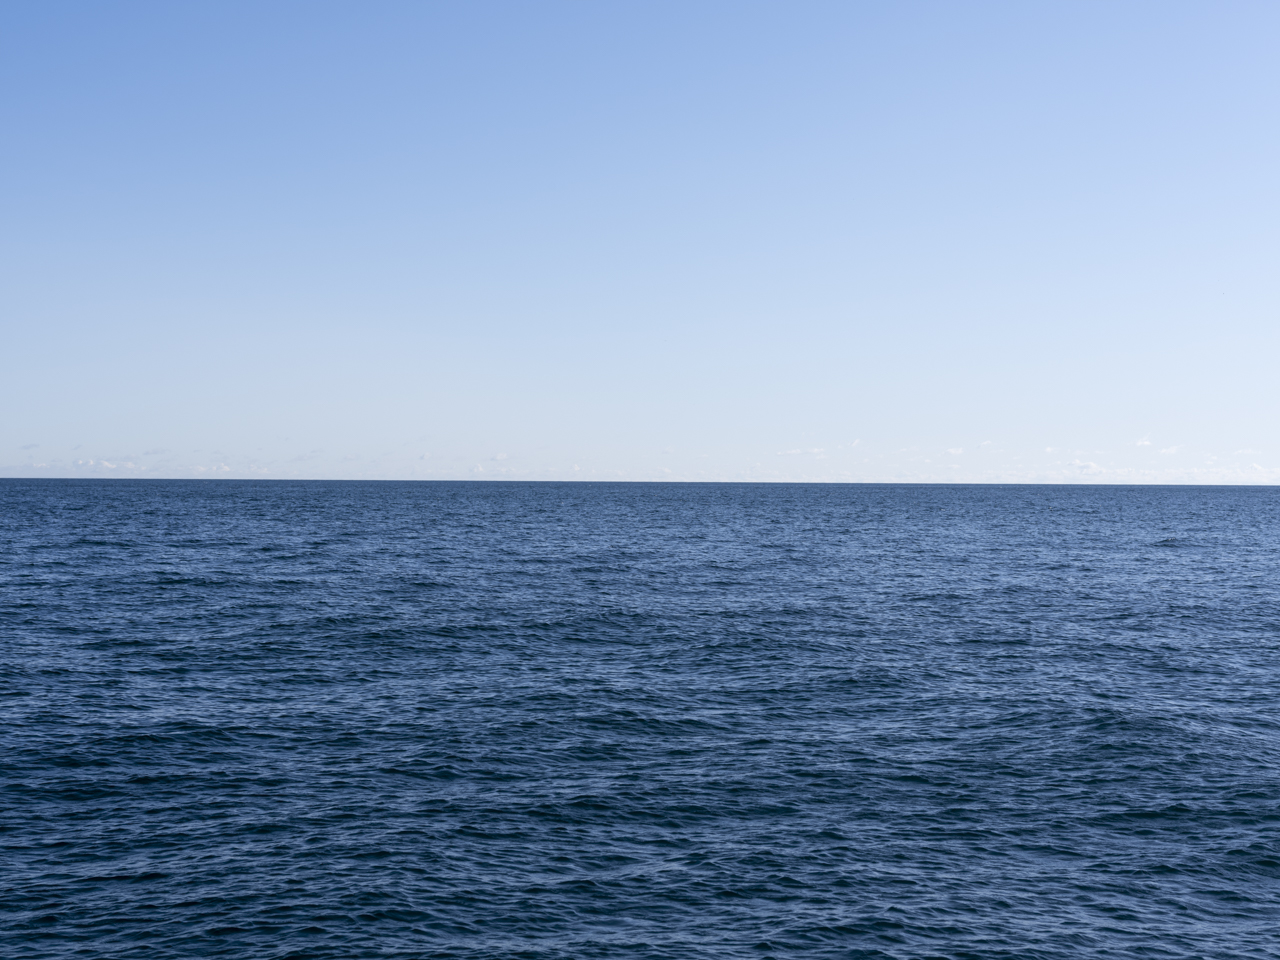 clear blue sky with deep blue water